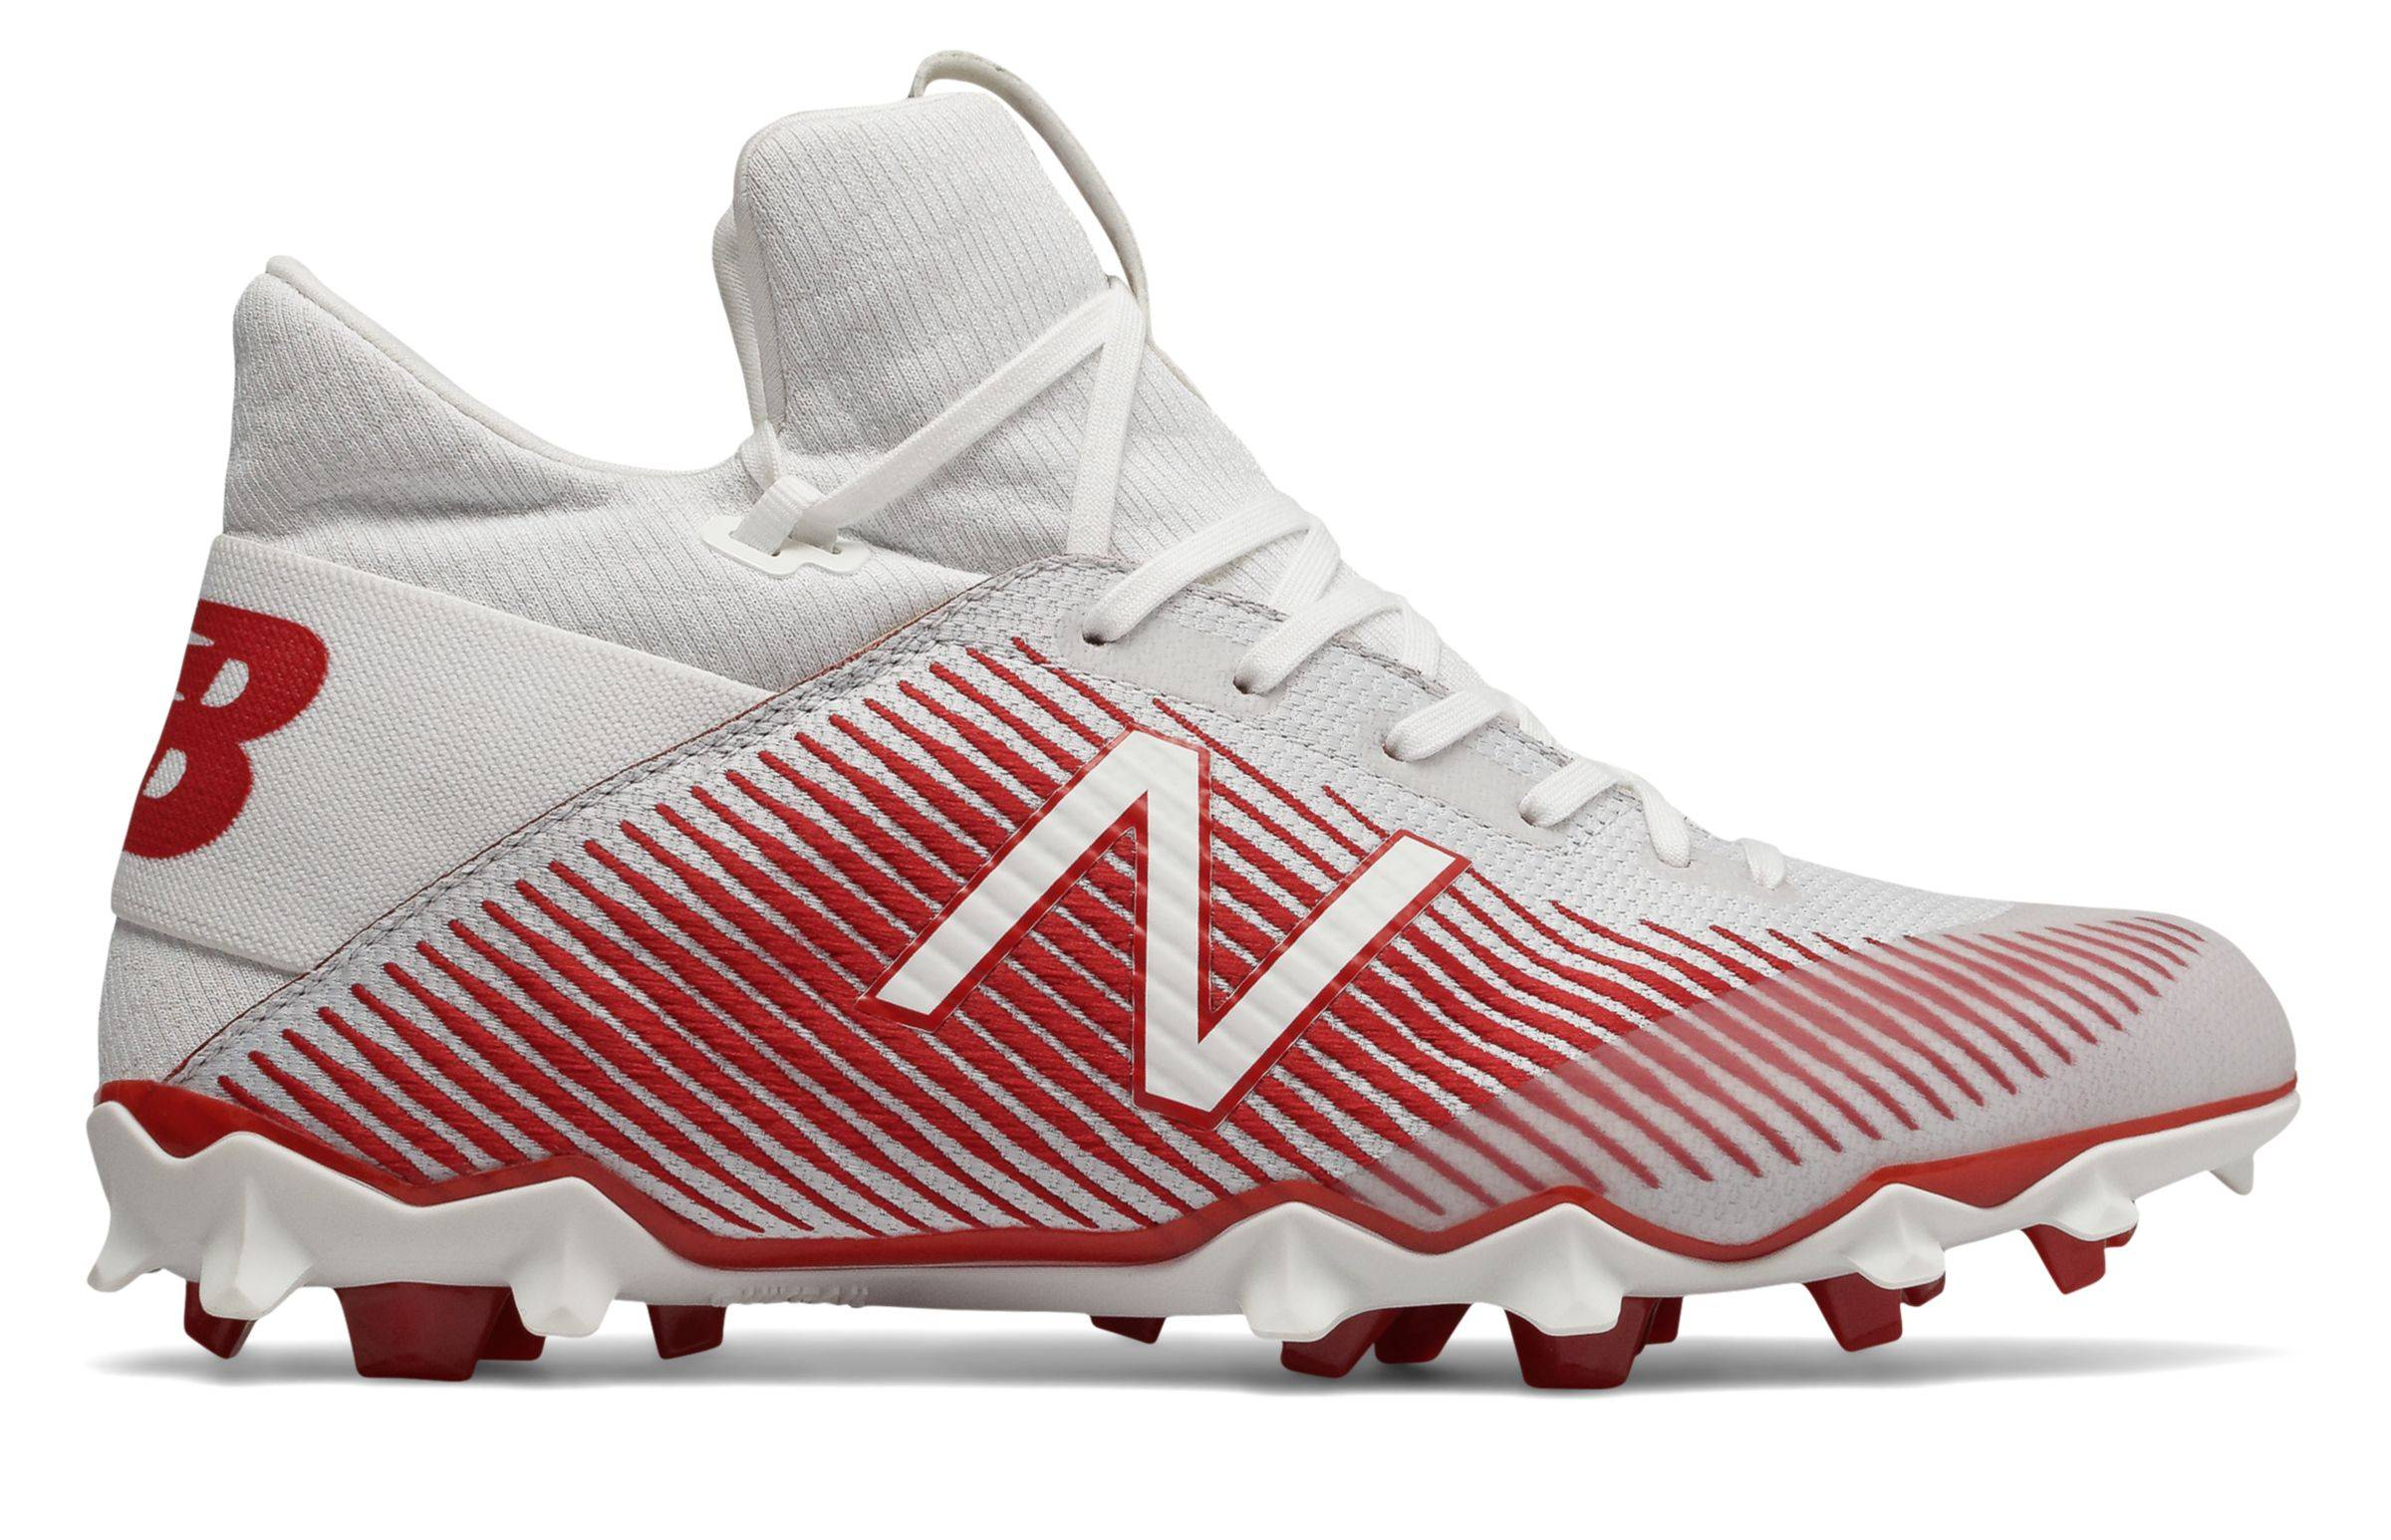 New Balance Men's FreezeLX 2.0 Lacrosse Shoes White with Red  - White with Red - Size: 10.5